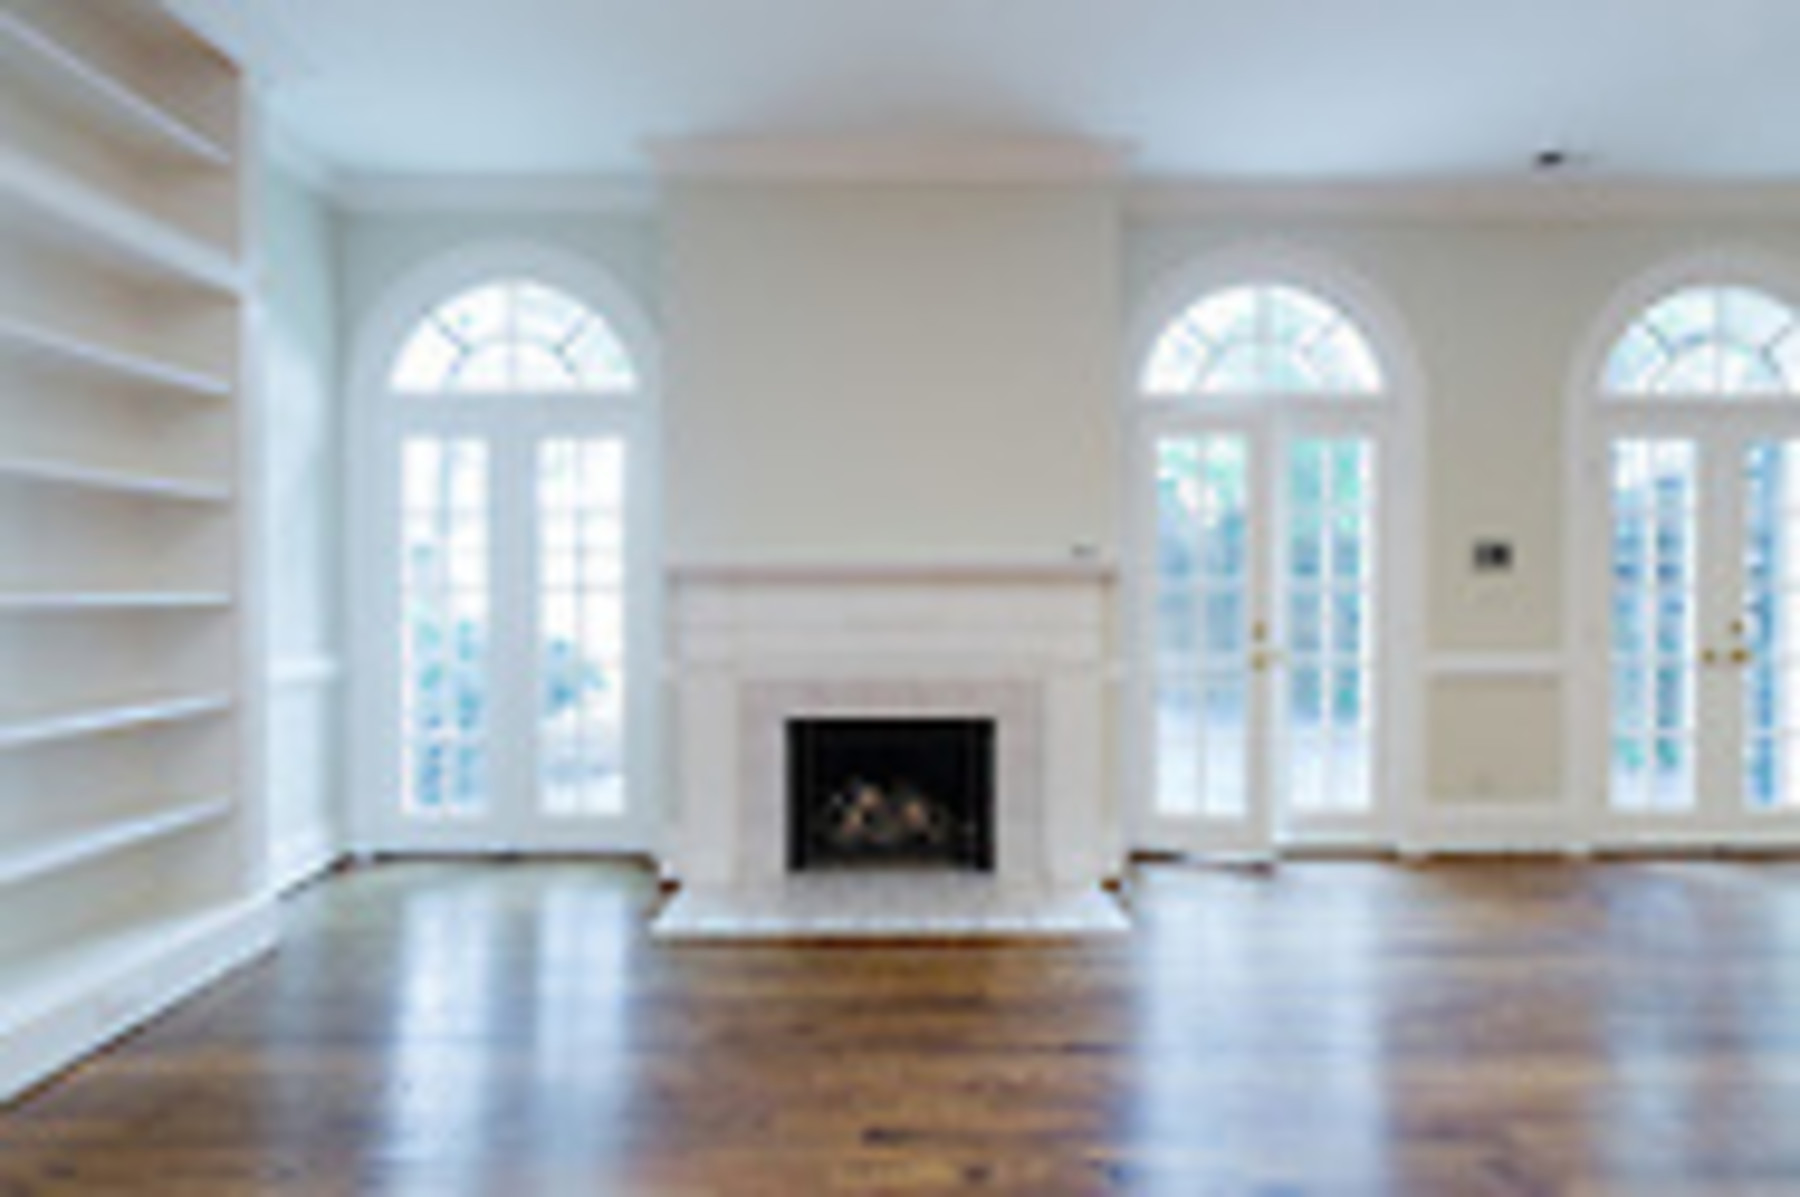 Additional photo for property listing at 1209 Stuart Robeson Drive, Mclean  McLean, バージニア 22101 アメリカ合衆国